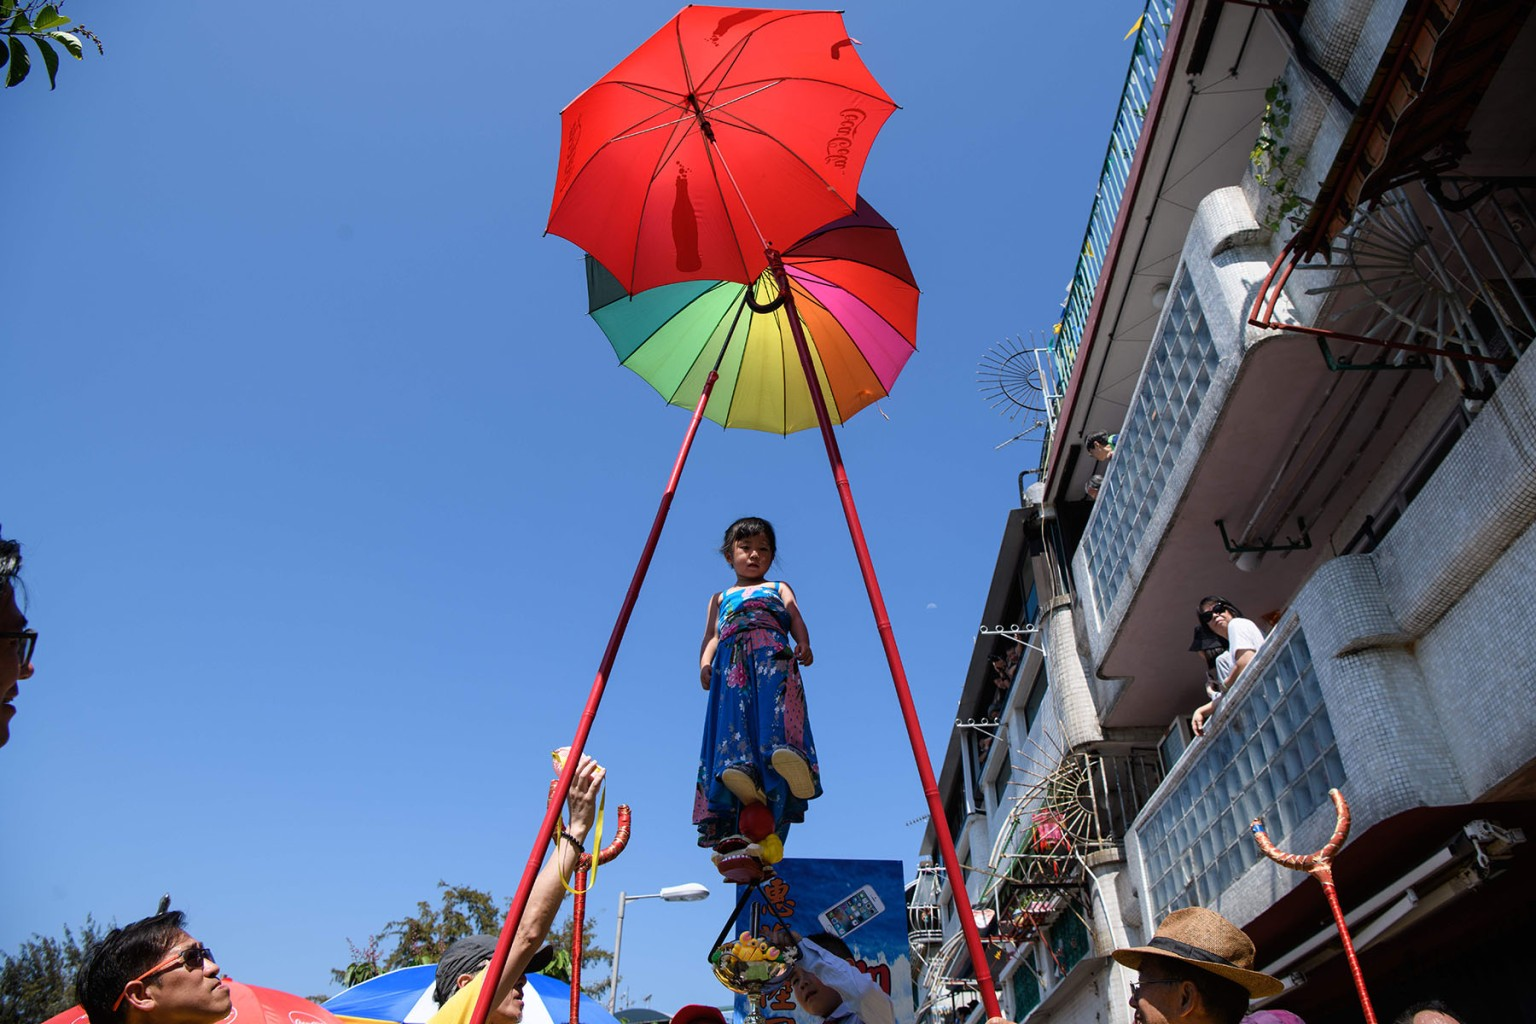 Four-year-old Hazel Kwok stands on a float while portraying former lawmaker Emily Lau during the annual Cheung Chau bun festival parade in Hong Kong on May 22. ANTHONY WALLACE/AFP/Getty Images